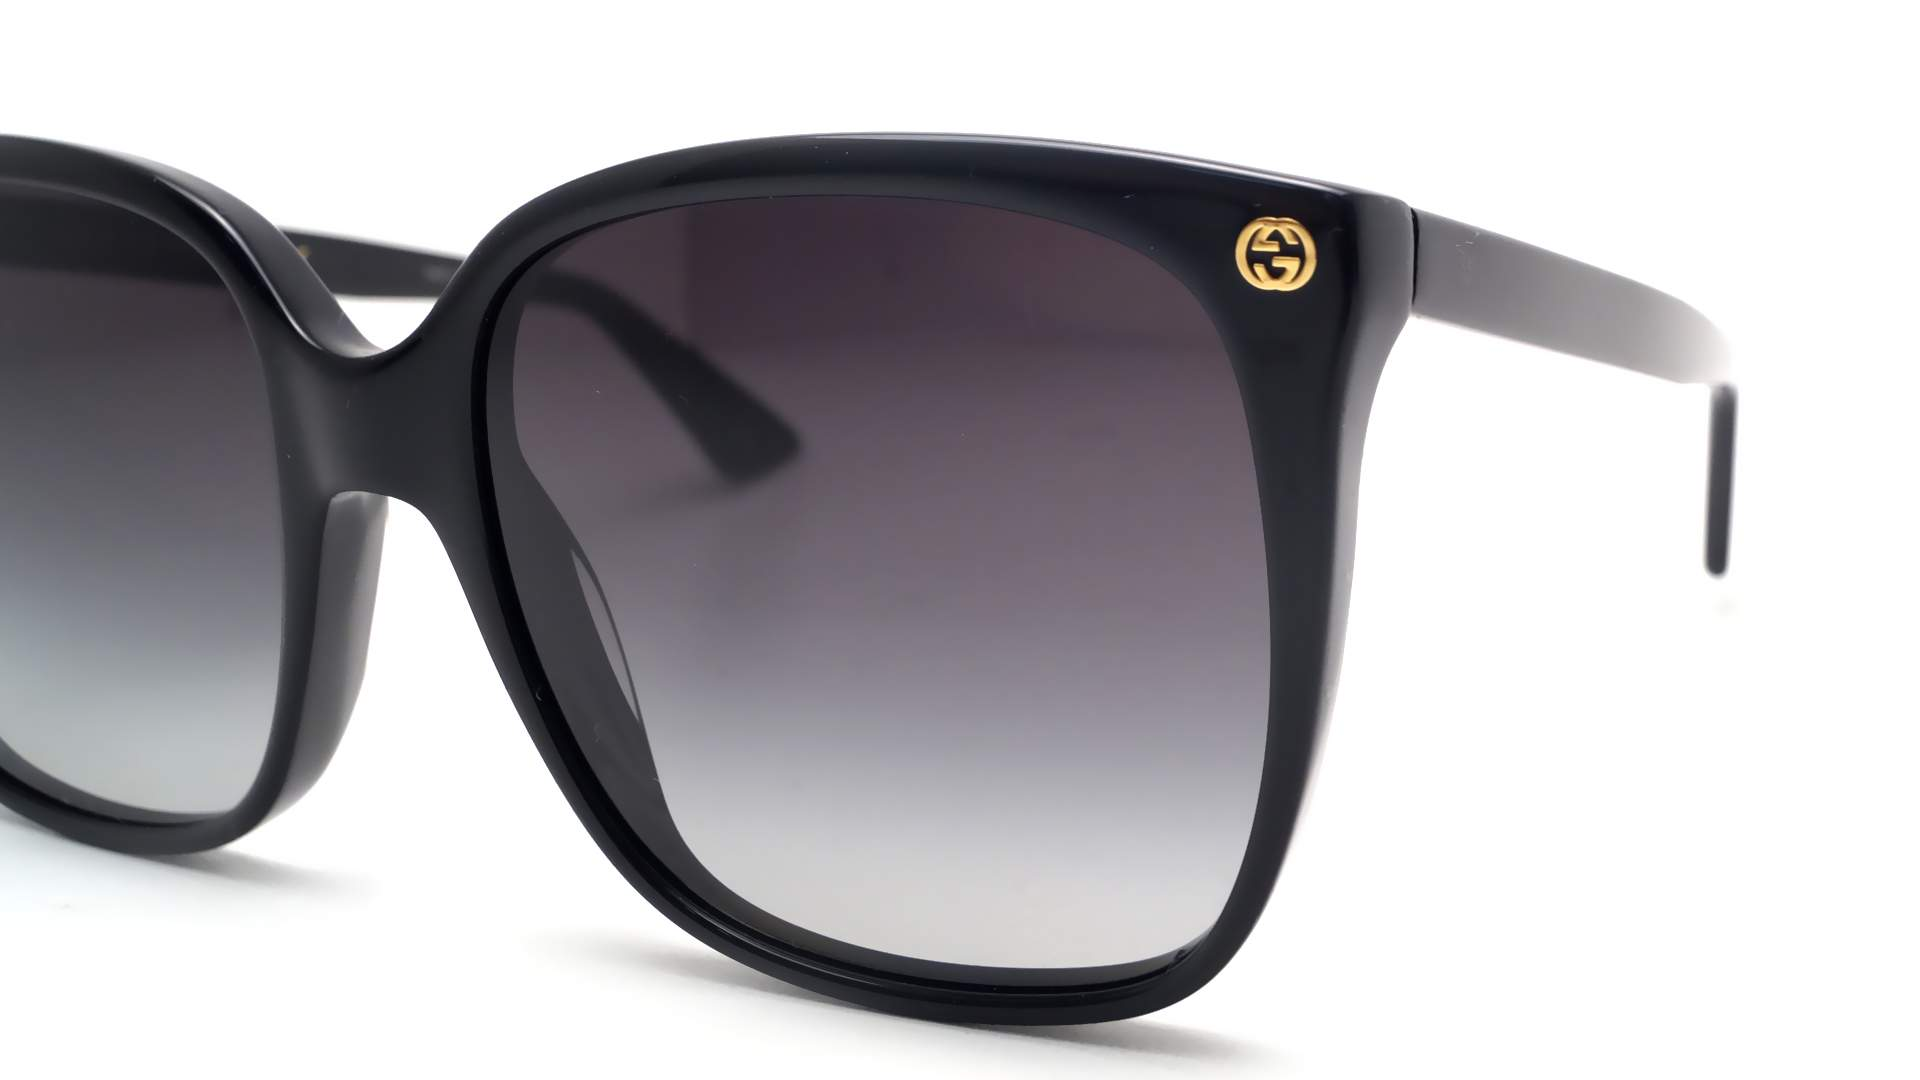 443ffc32373 Sunglasses Gucci GG0022S 001 57-18 Black Large Gradient